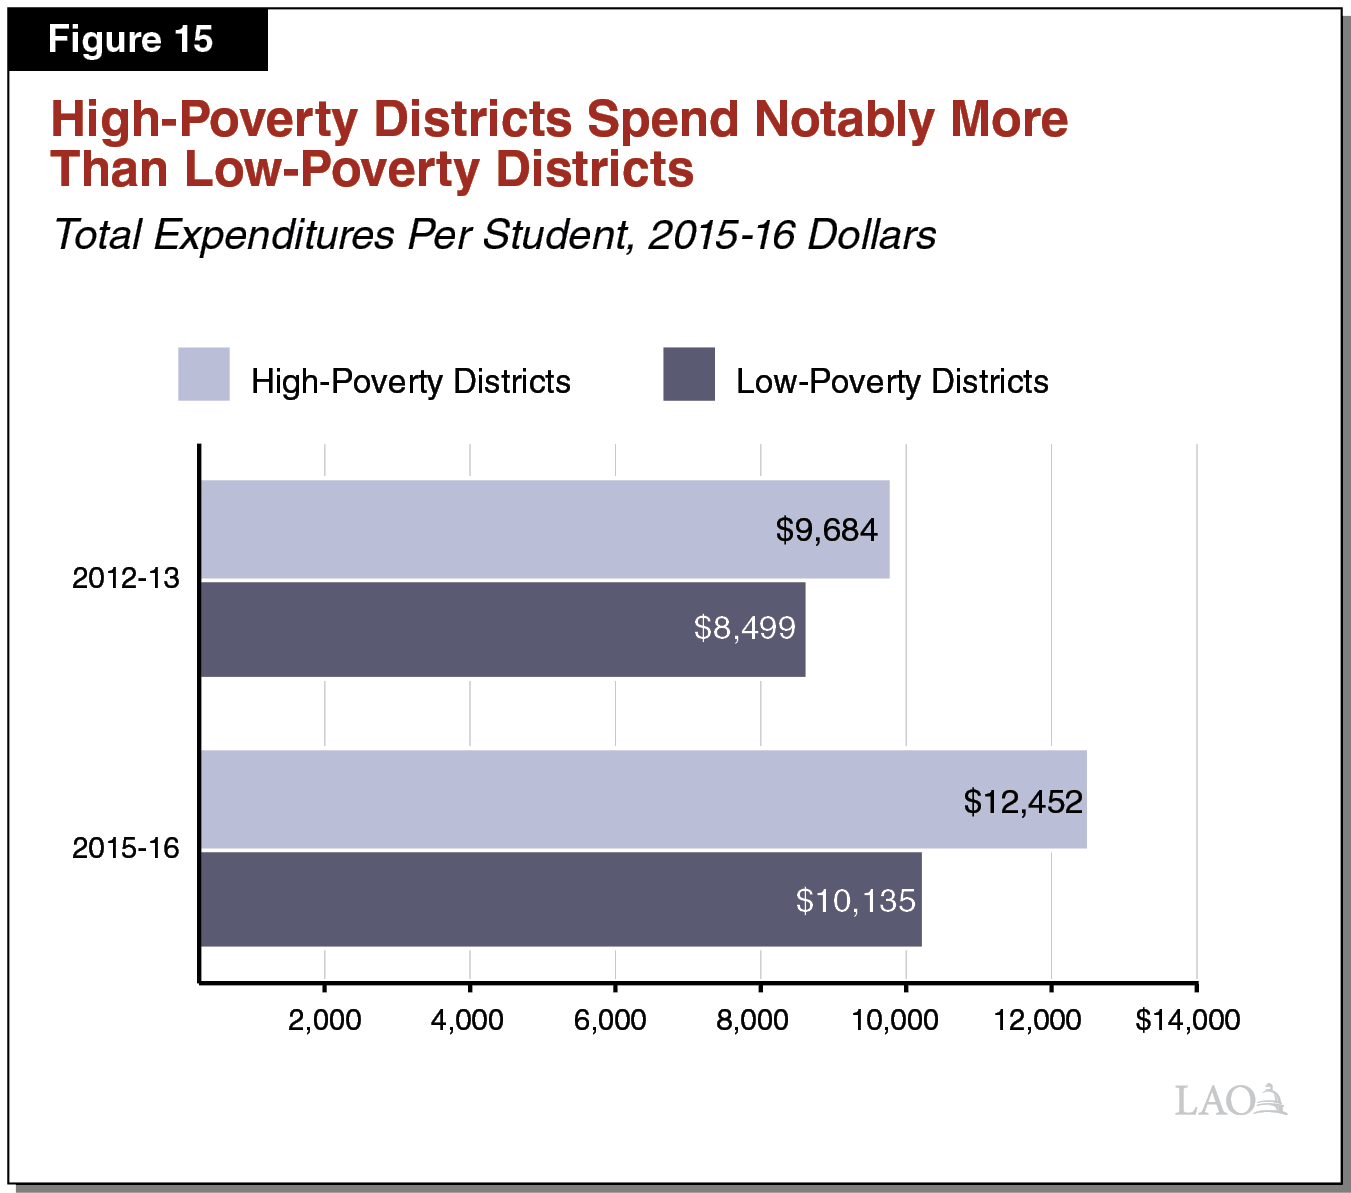 Figure 15 - High-Poverty Districts Spend Notably More than Low-Poverty Districts